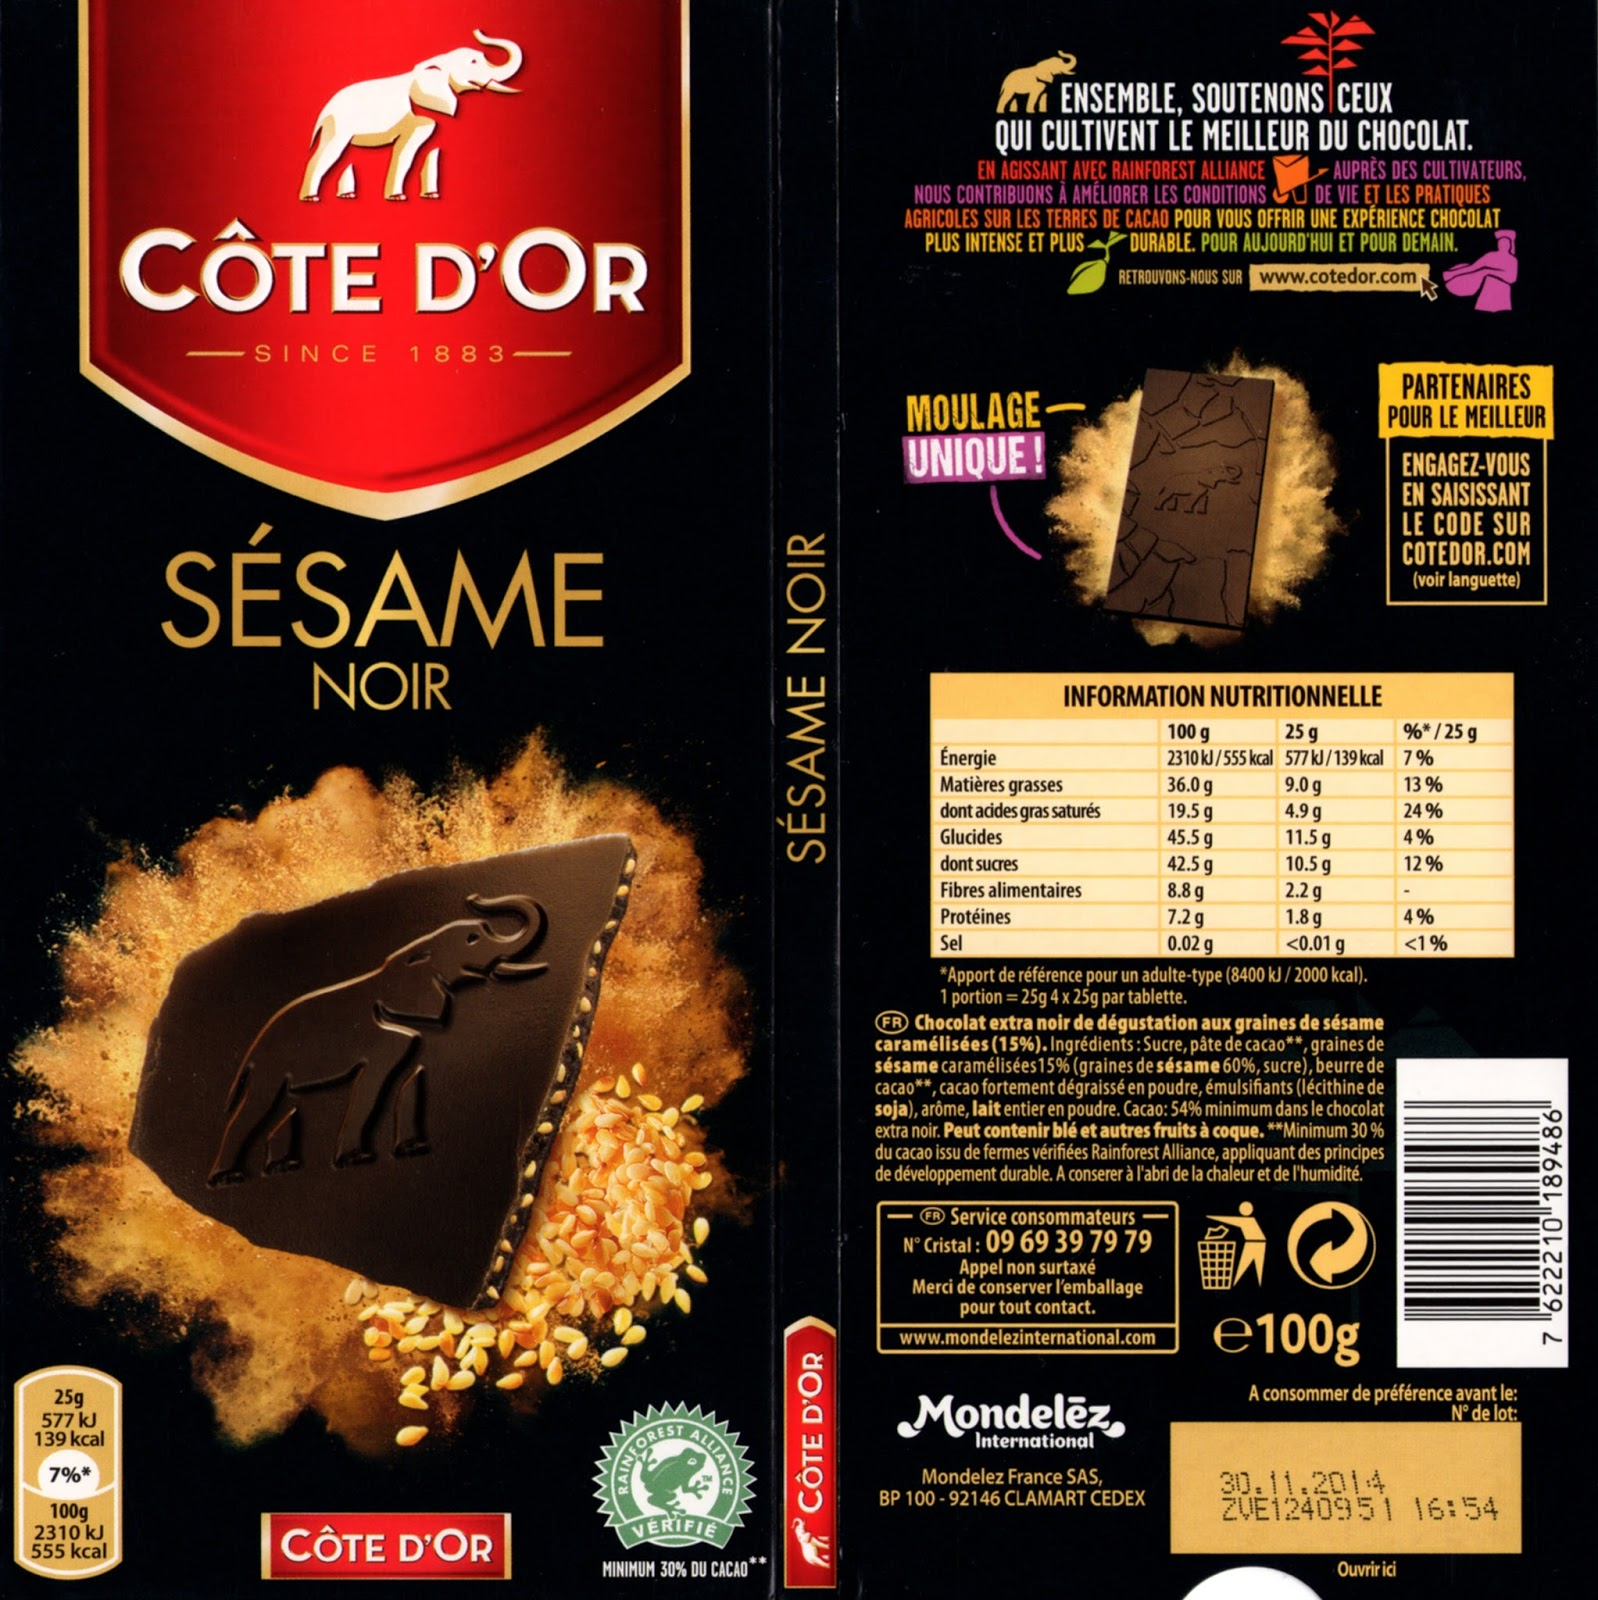 tablette de chocolat noir gourmand côte d'or sésame noir